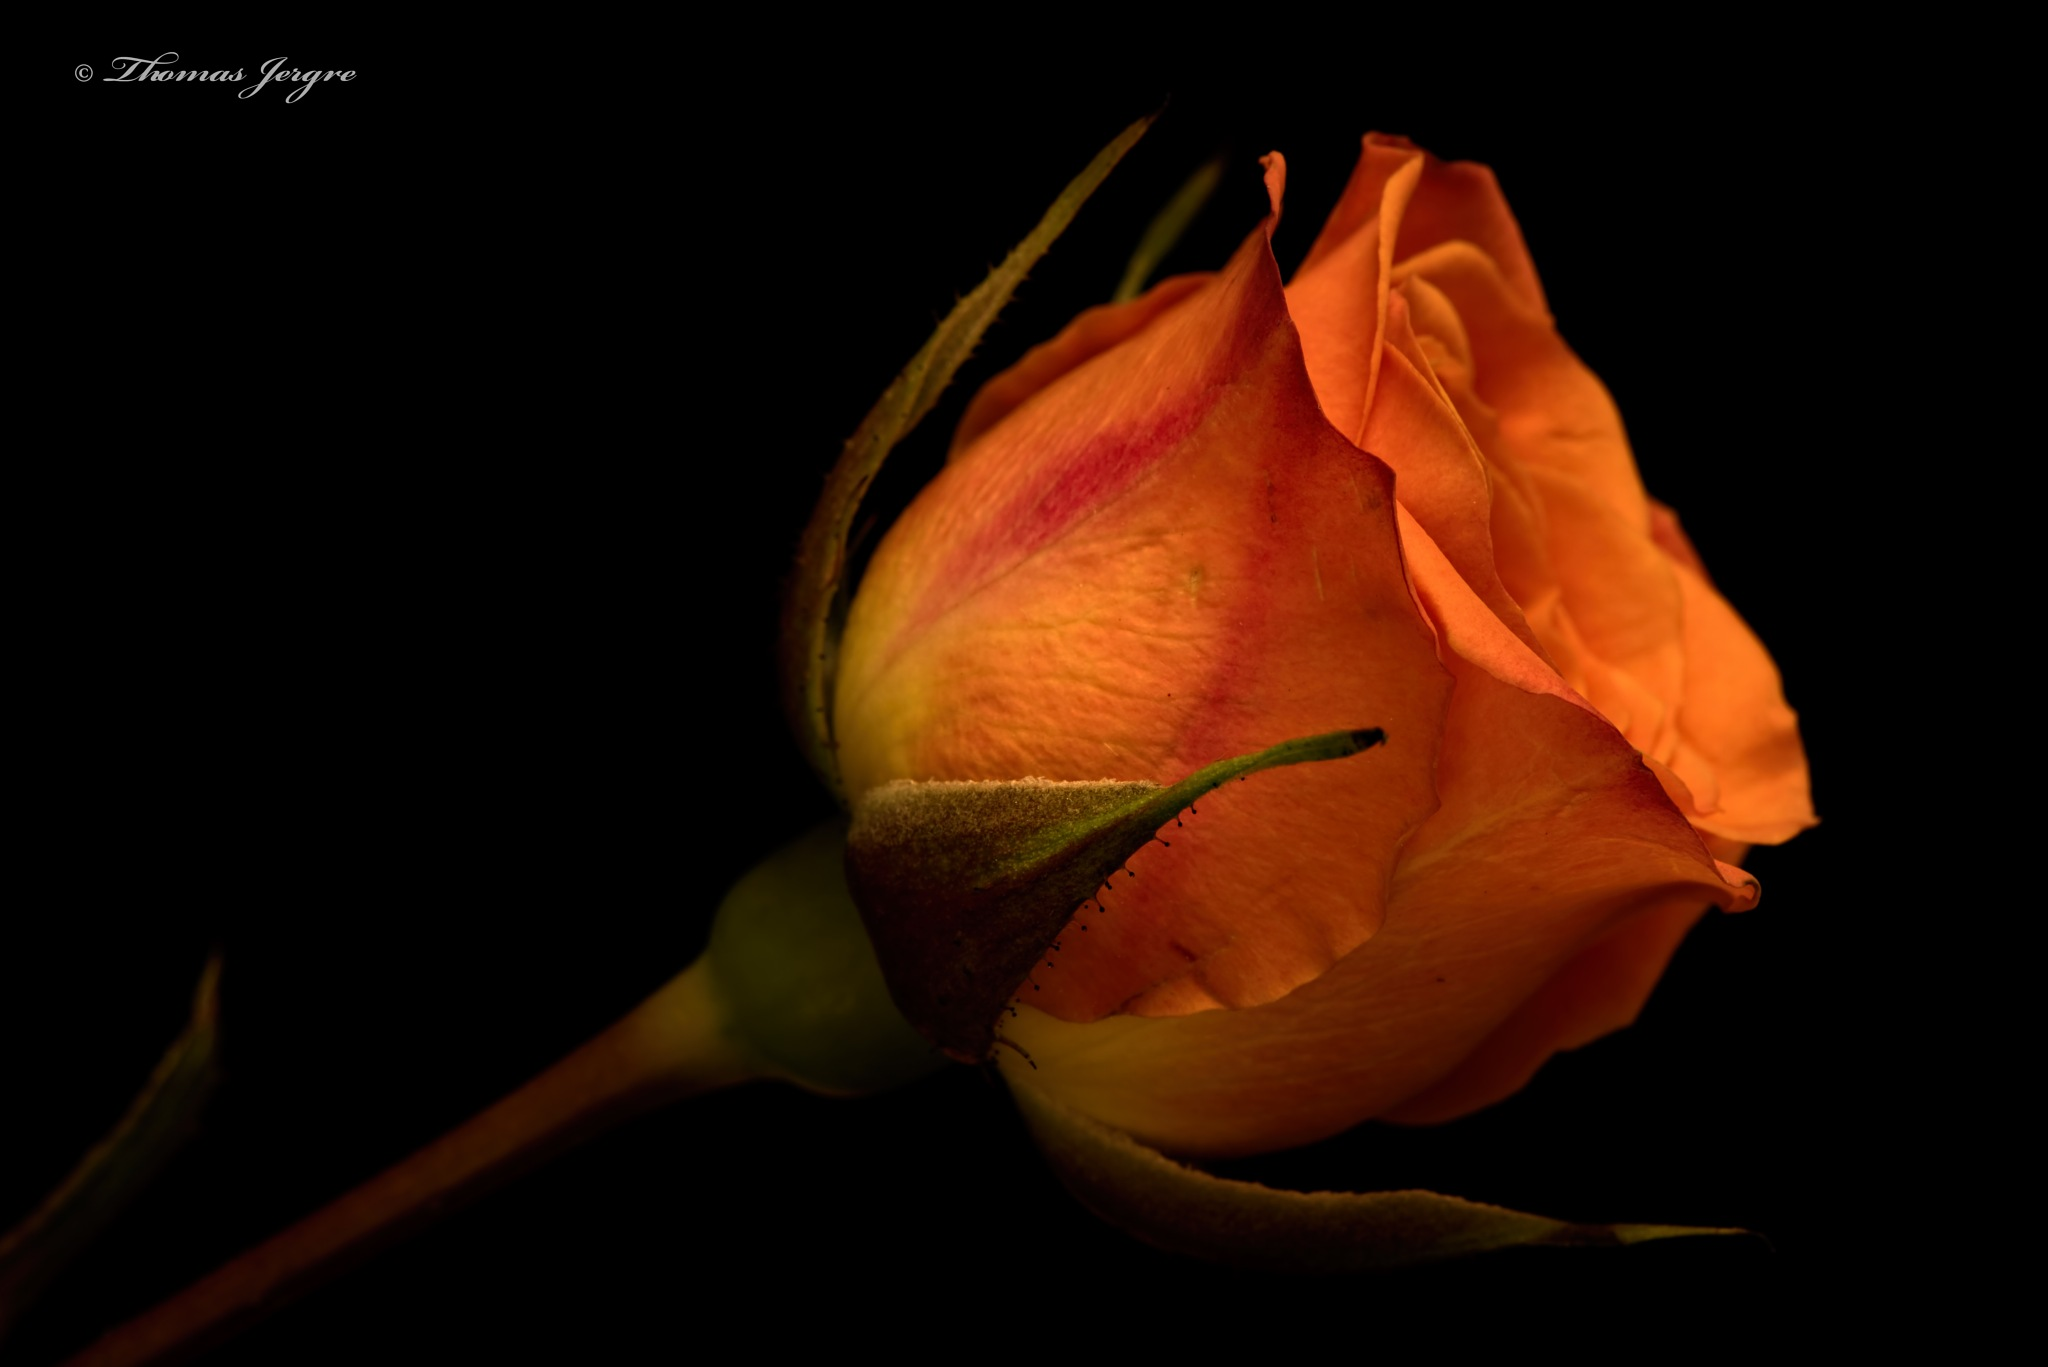 Somber Rose 0923 by ThomasJerger